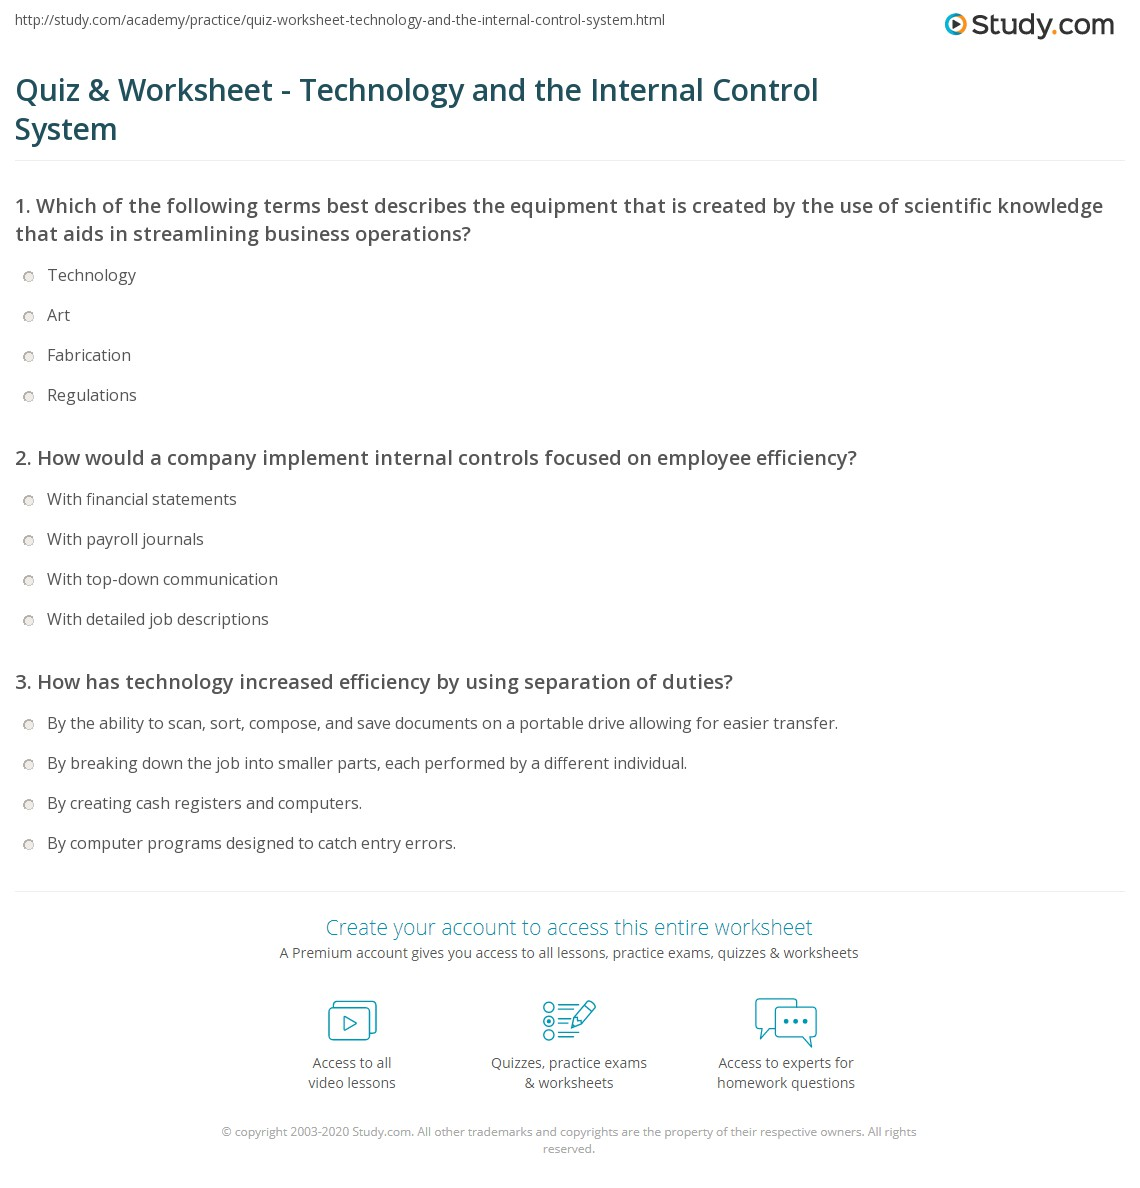 Quiz & Worksheet - Technology and the Internal Control System